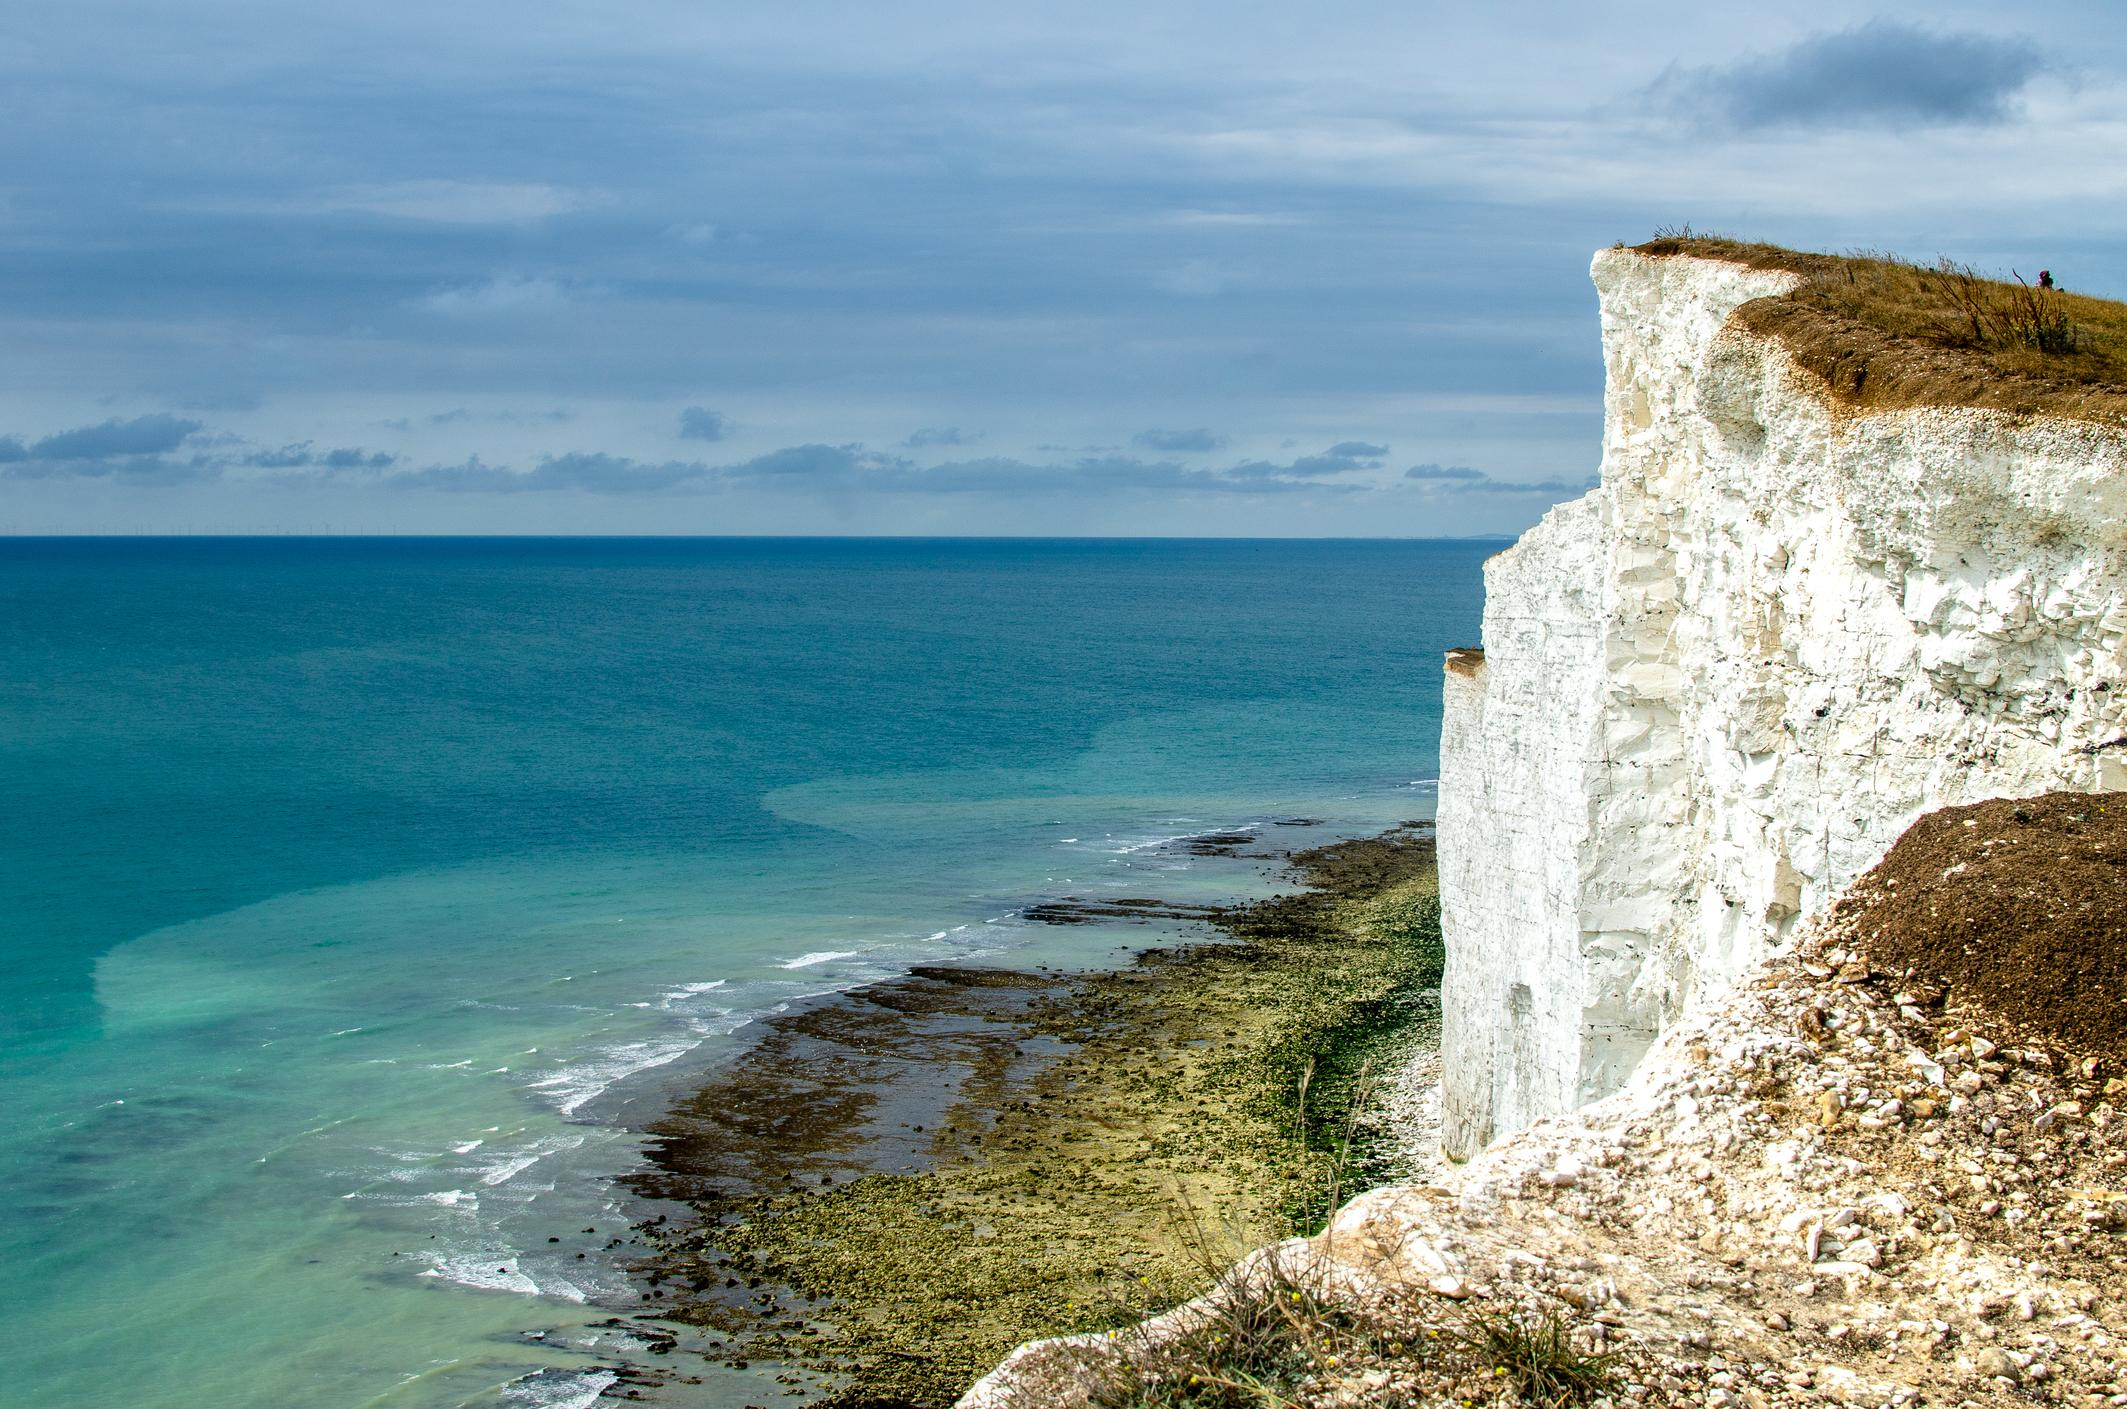 "Remain close to home with a British staycation to Kent, which in 2020 should be a vintage year for the winemaking region. There's also ancient castles and the famous white cliffs to appeal to travellers. Stay at the newly-opened <a href=""https://www.i-escape.com/the-pig-at-bridge-place"" rel=""nofollow noopener"" target=""_blank"" data-ylk=""slk:Pig at Bridge Place"" class=""link rapid-noclick-resp"">Pig at Bridge Place</a> for £99, or try the <a href=""https://www.i-escape.com/elmley-nature-reserve"" rel=""nofollow noopener"" target=""_blank"" data-ylk=""slk:Elmley Nature Reserve"" class=""link rapid-noclick-resp"">Elmley Nature Reserve</a> shepherd's huts (for 2-4) and two stylish houses (for 10-14) on a wild nature reserve, for £95. <em>[Photo: Getty]</em>"